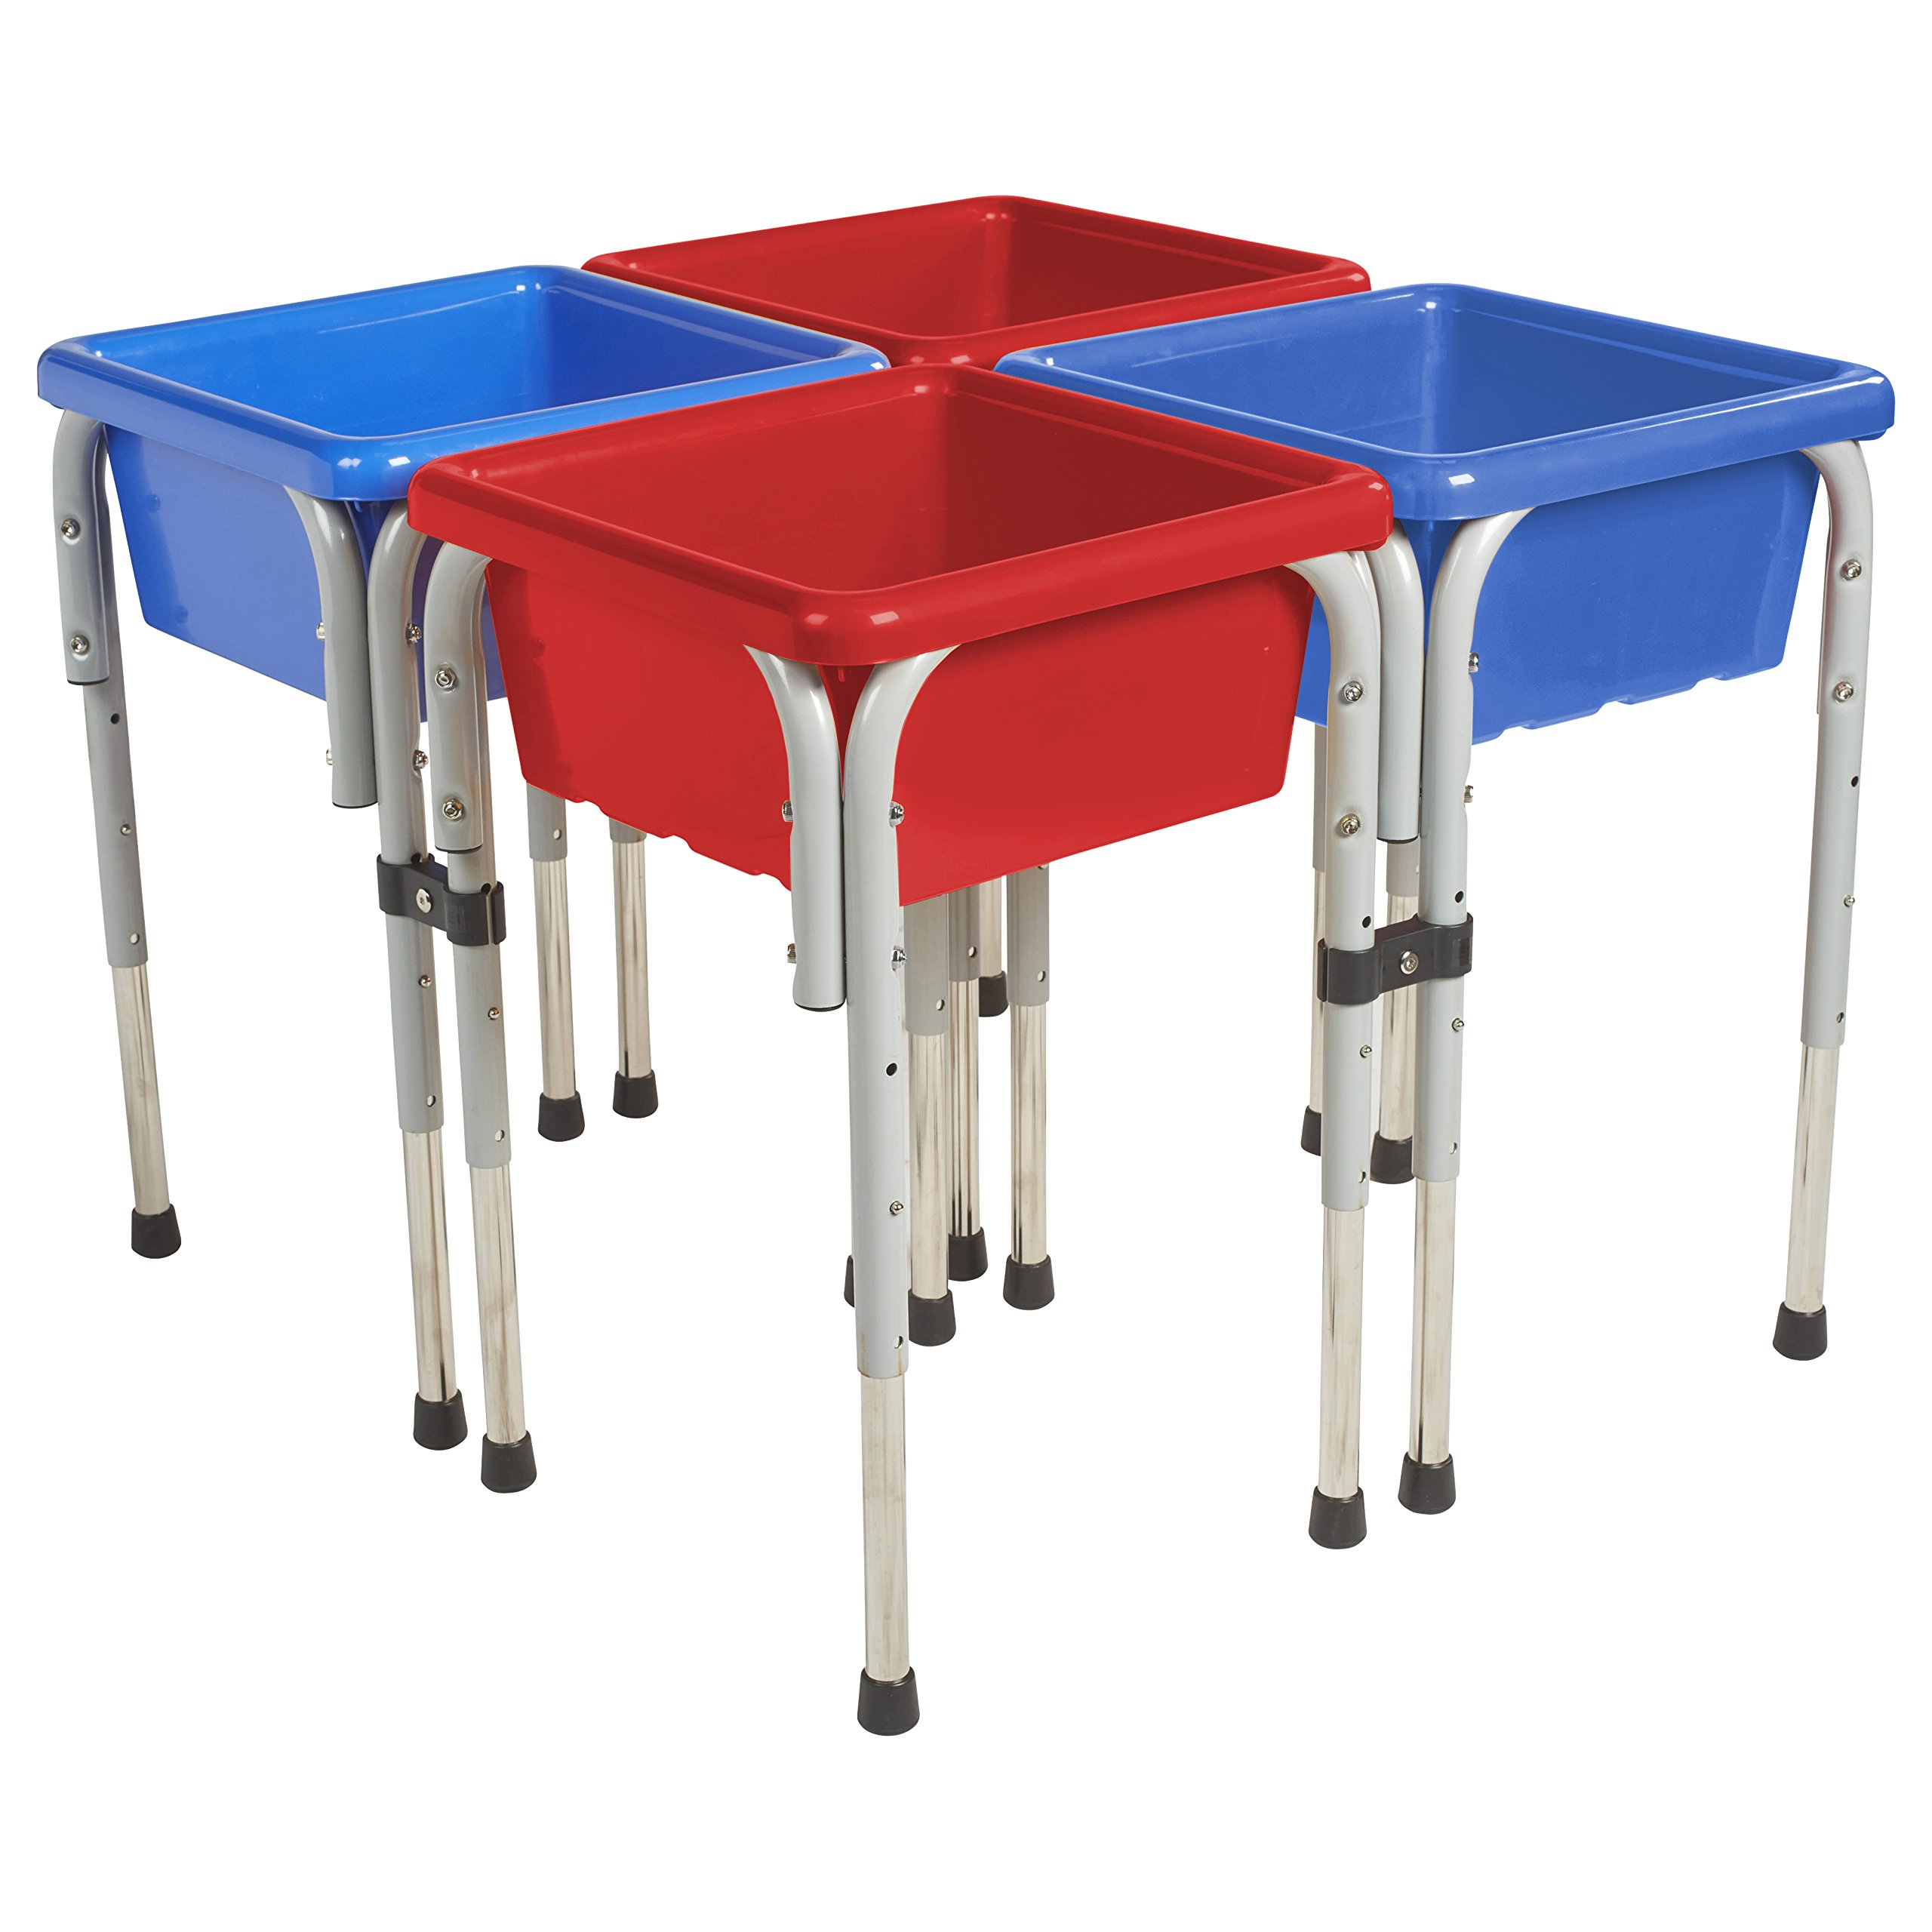 ECR4Kids Assorted Colors Sand and Water Adjustable Activity Play Table Center with Lids, Square (4-Station)